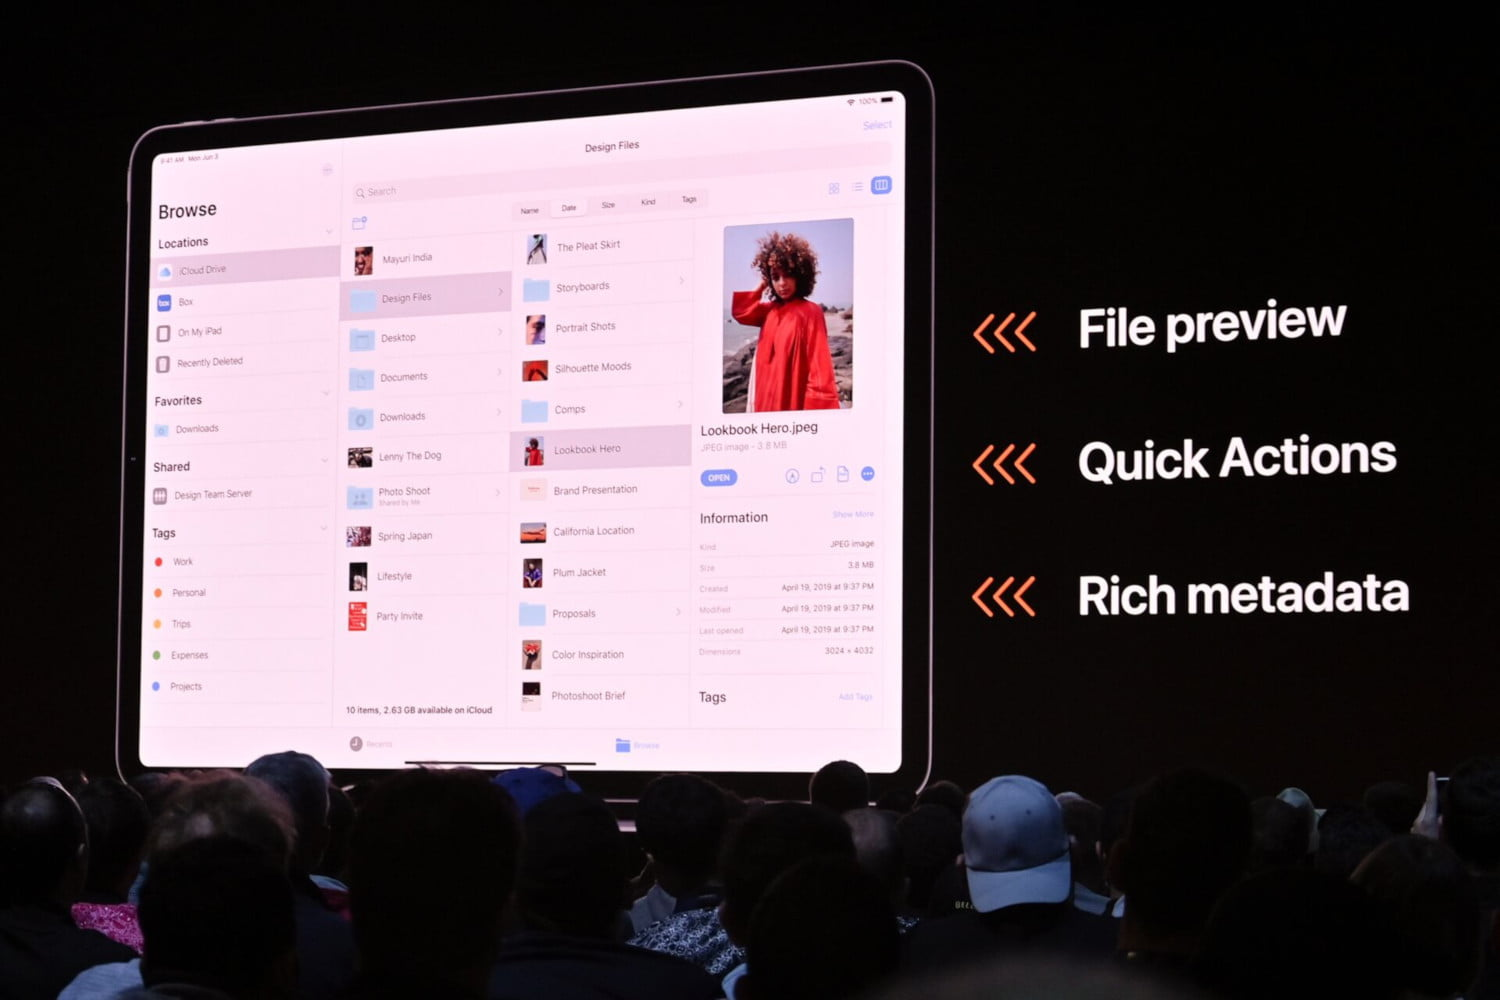 Apple's iPadOS Brings Better Multitasking and Files App to the iPad